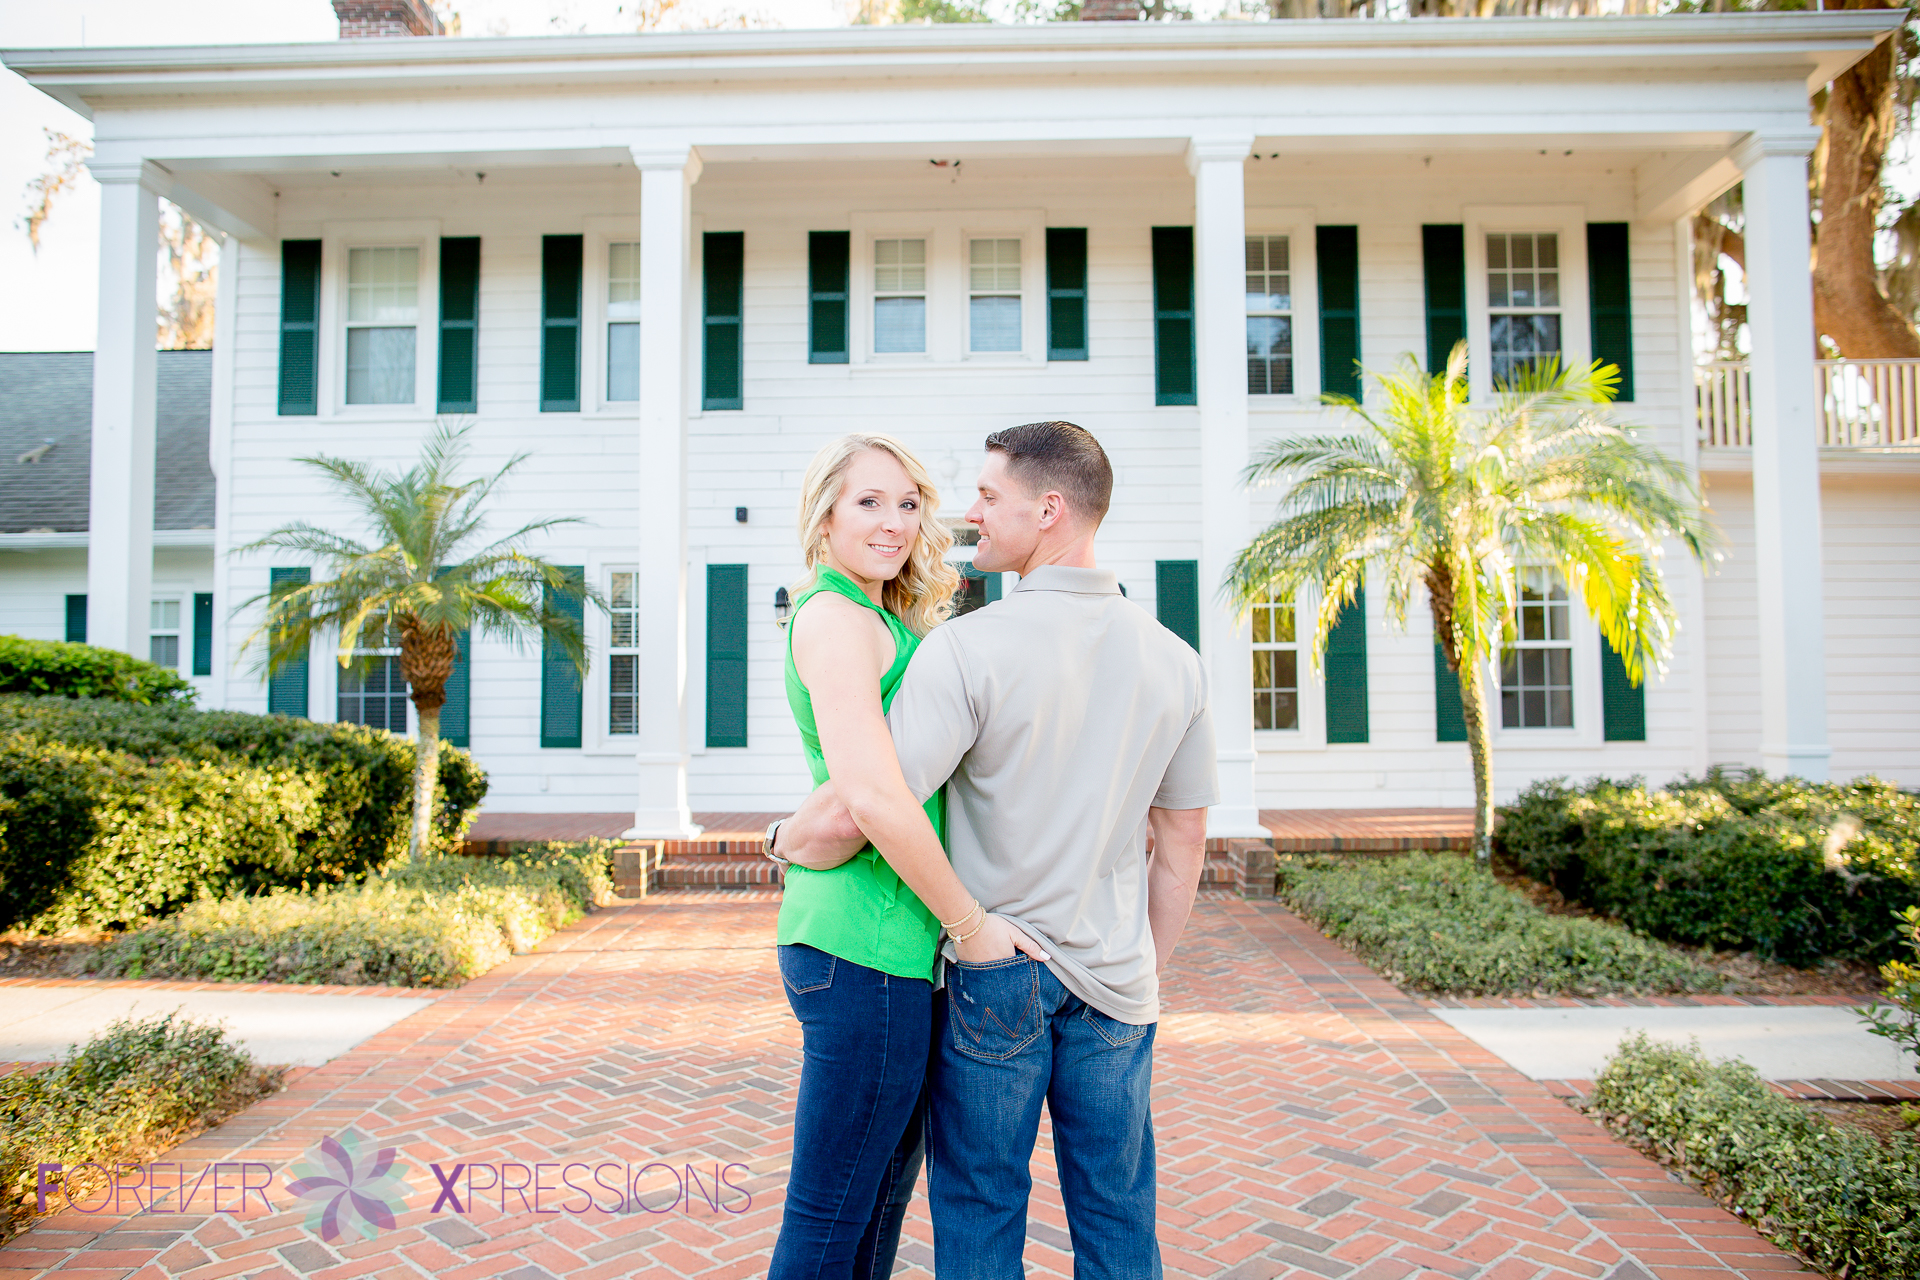 Forever_Xpressions_Engagement_Session_Orlando-1476